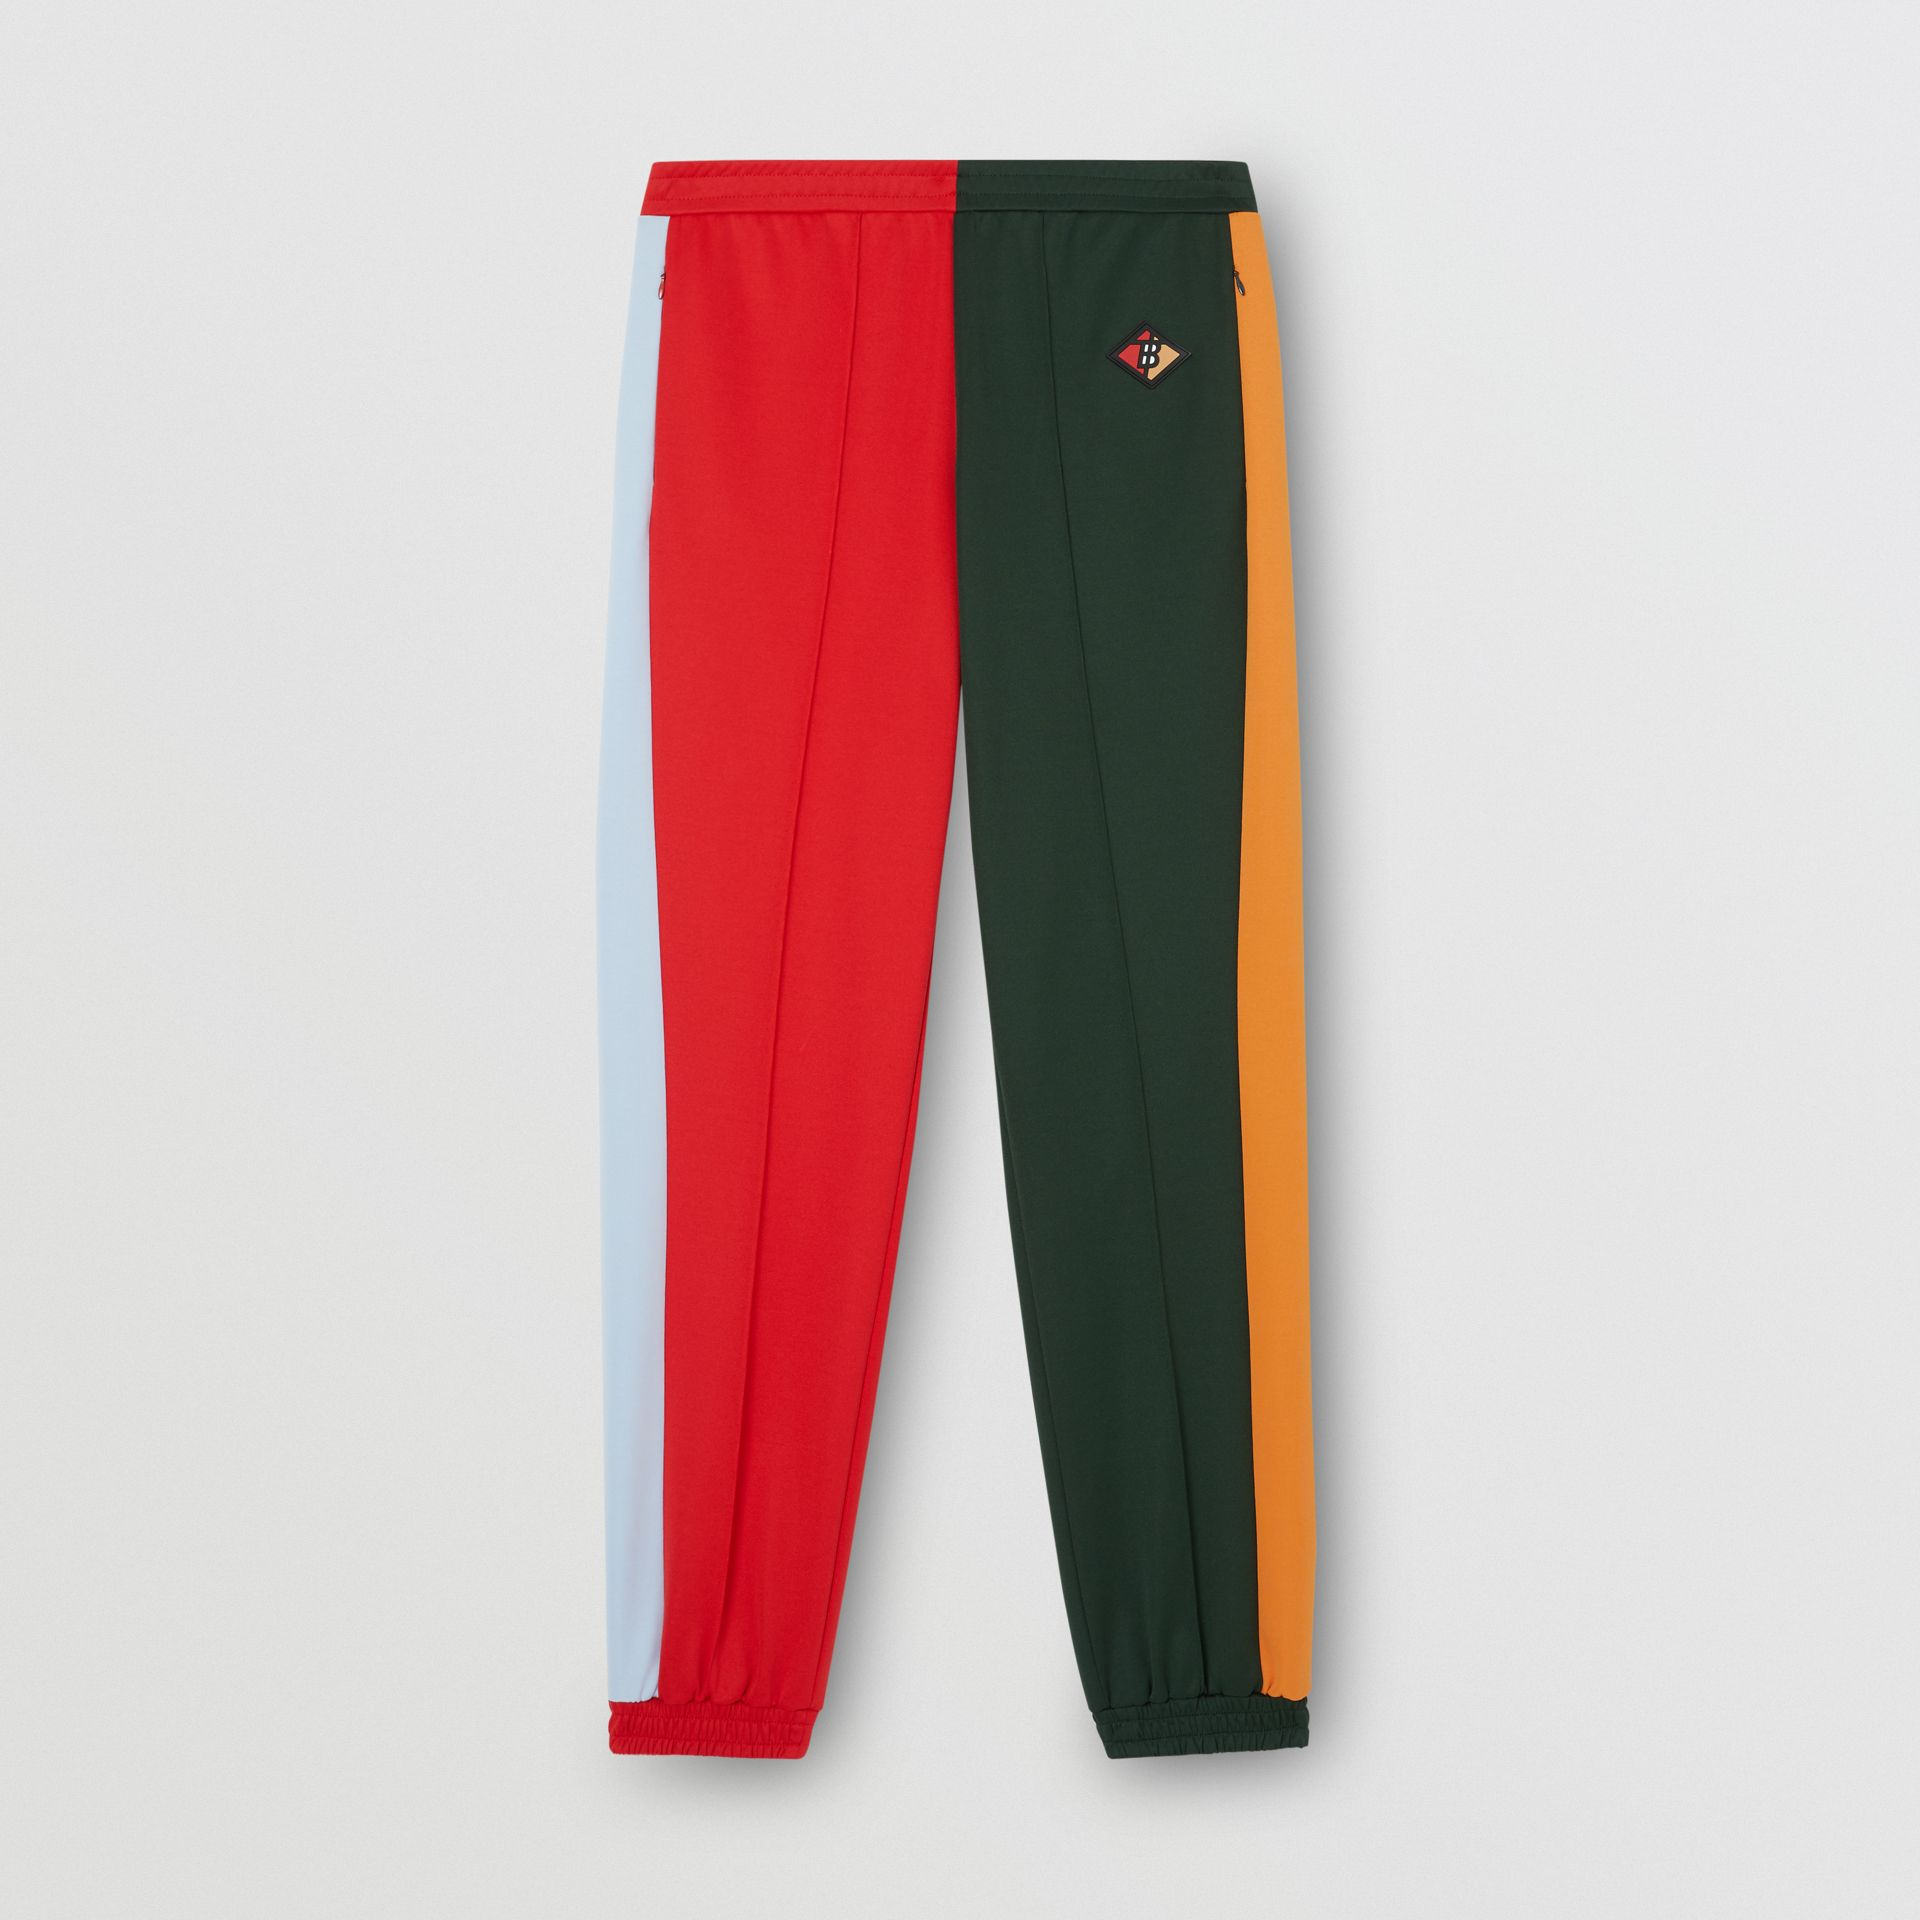 Pantalon de survêtement en jersey color-block avec logo (Vert Pin Sombre) - Homme | Burberry - photo de la galerie 2